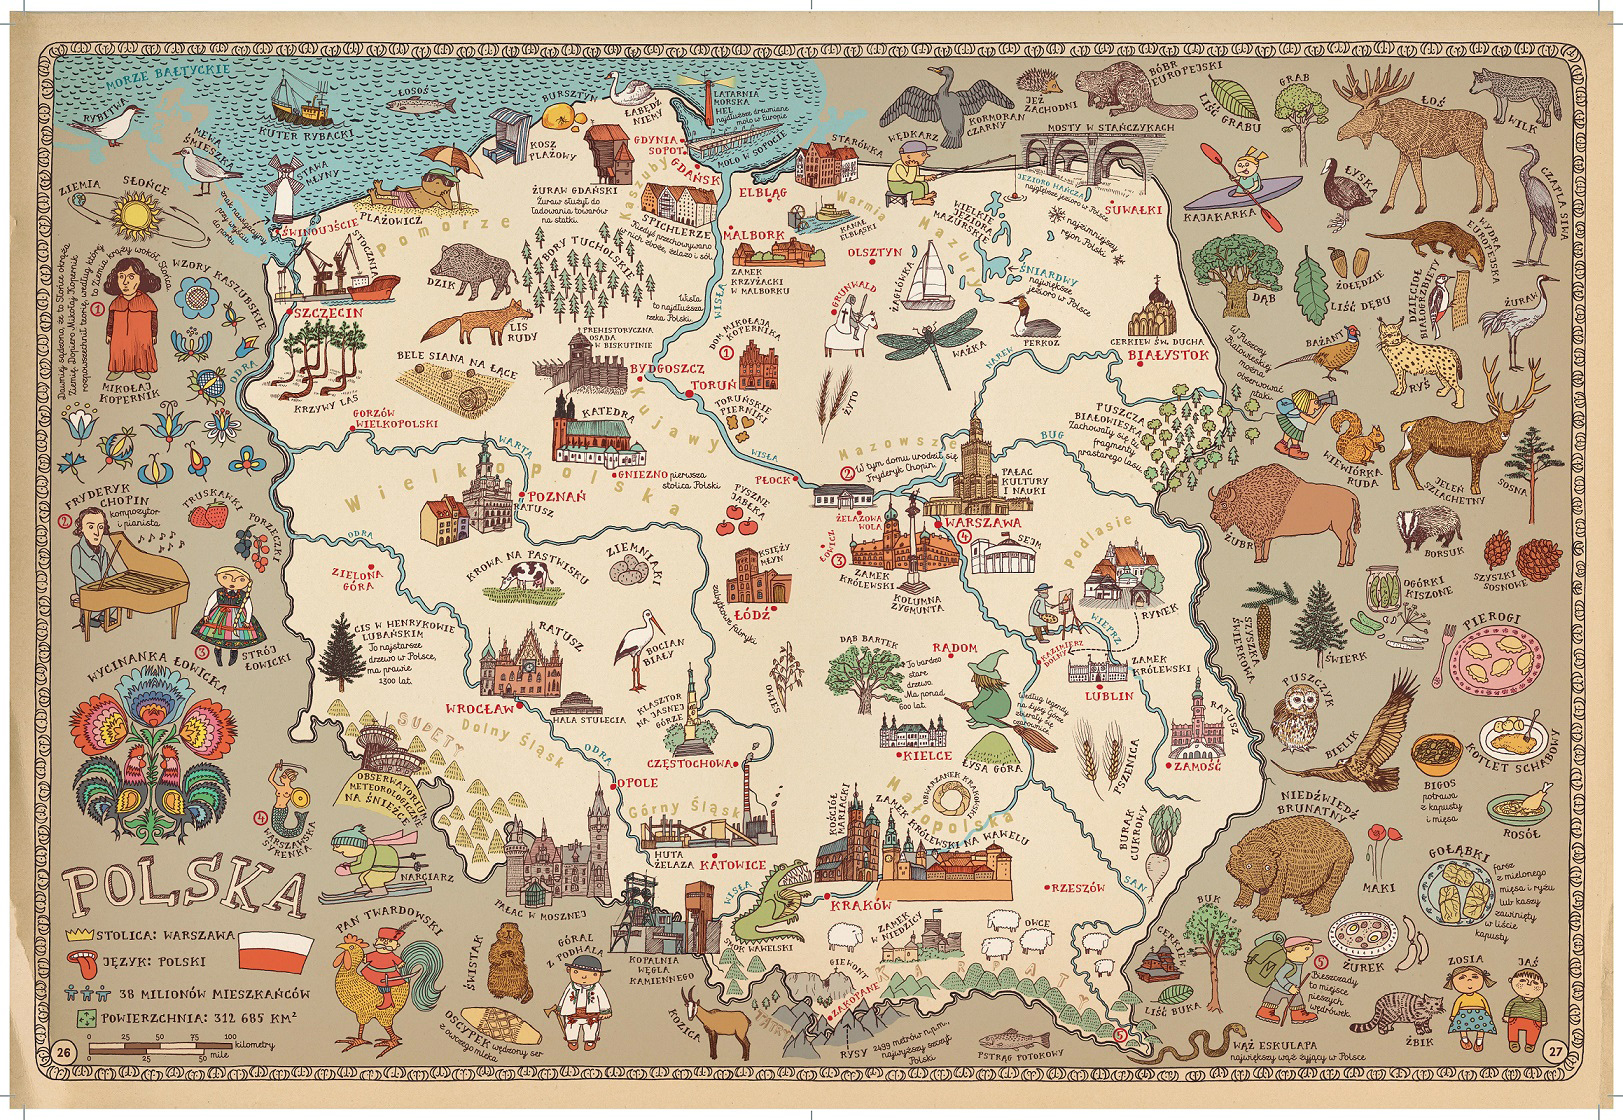 old world maps images with Detailed Tourist Illustrated Map Of Poland on Beautiful Hand Drawn Maps Tumblr Dennys Hess furthermore Wel arte Vintage V37800 together with Tallinn likewise Ground Texture Seamless 17330 in addition Kotor.